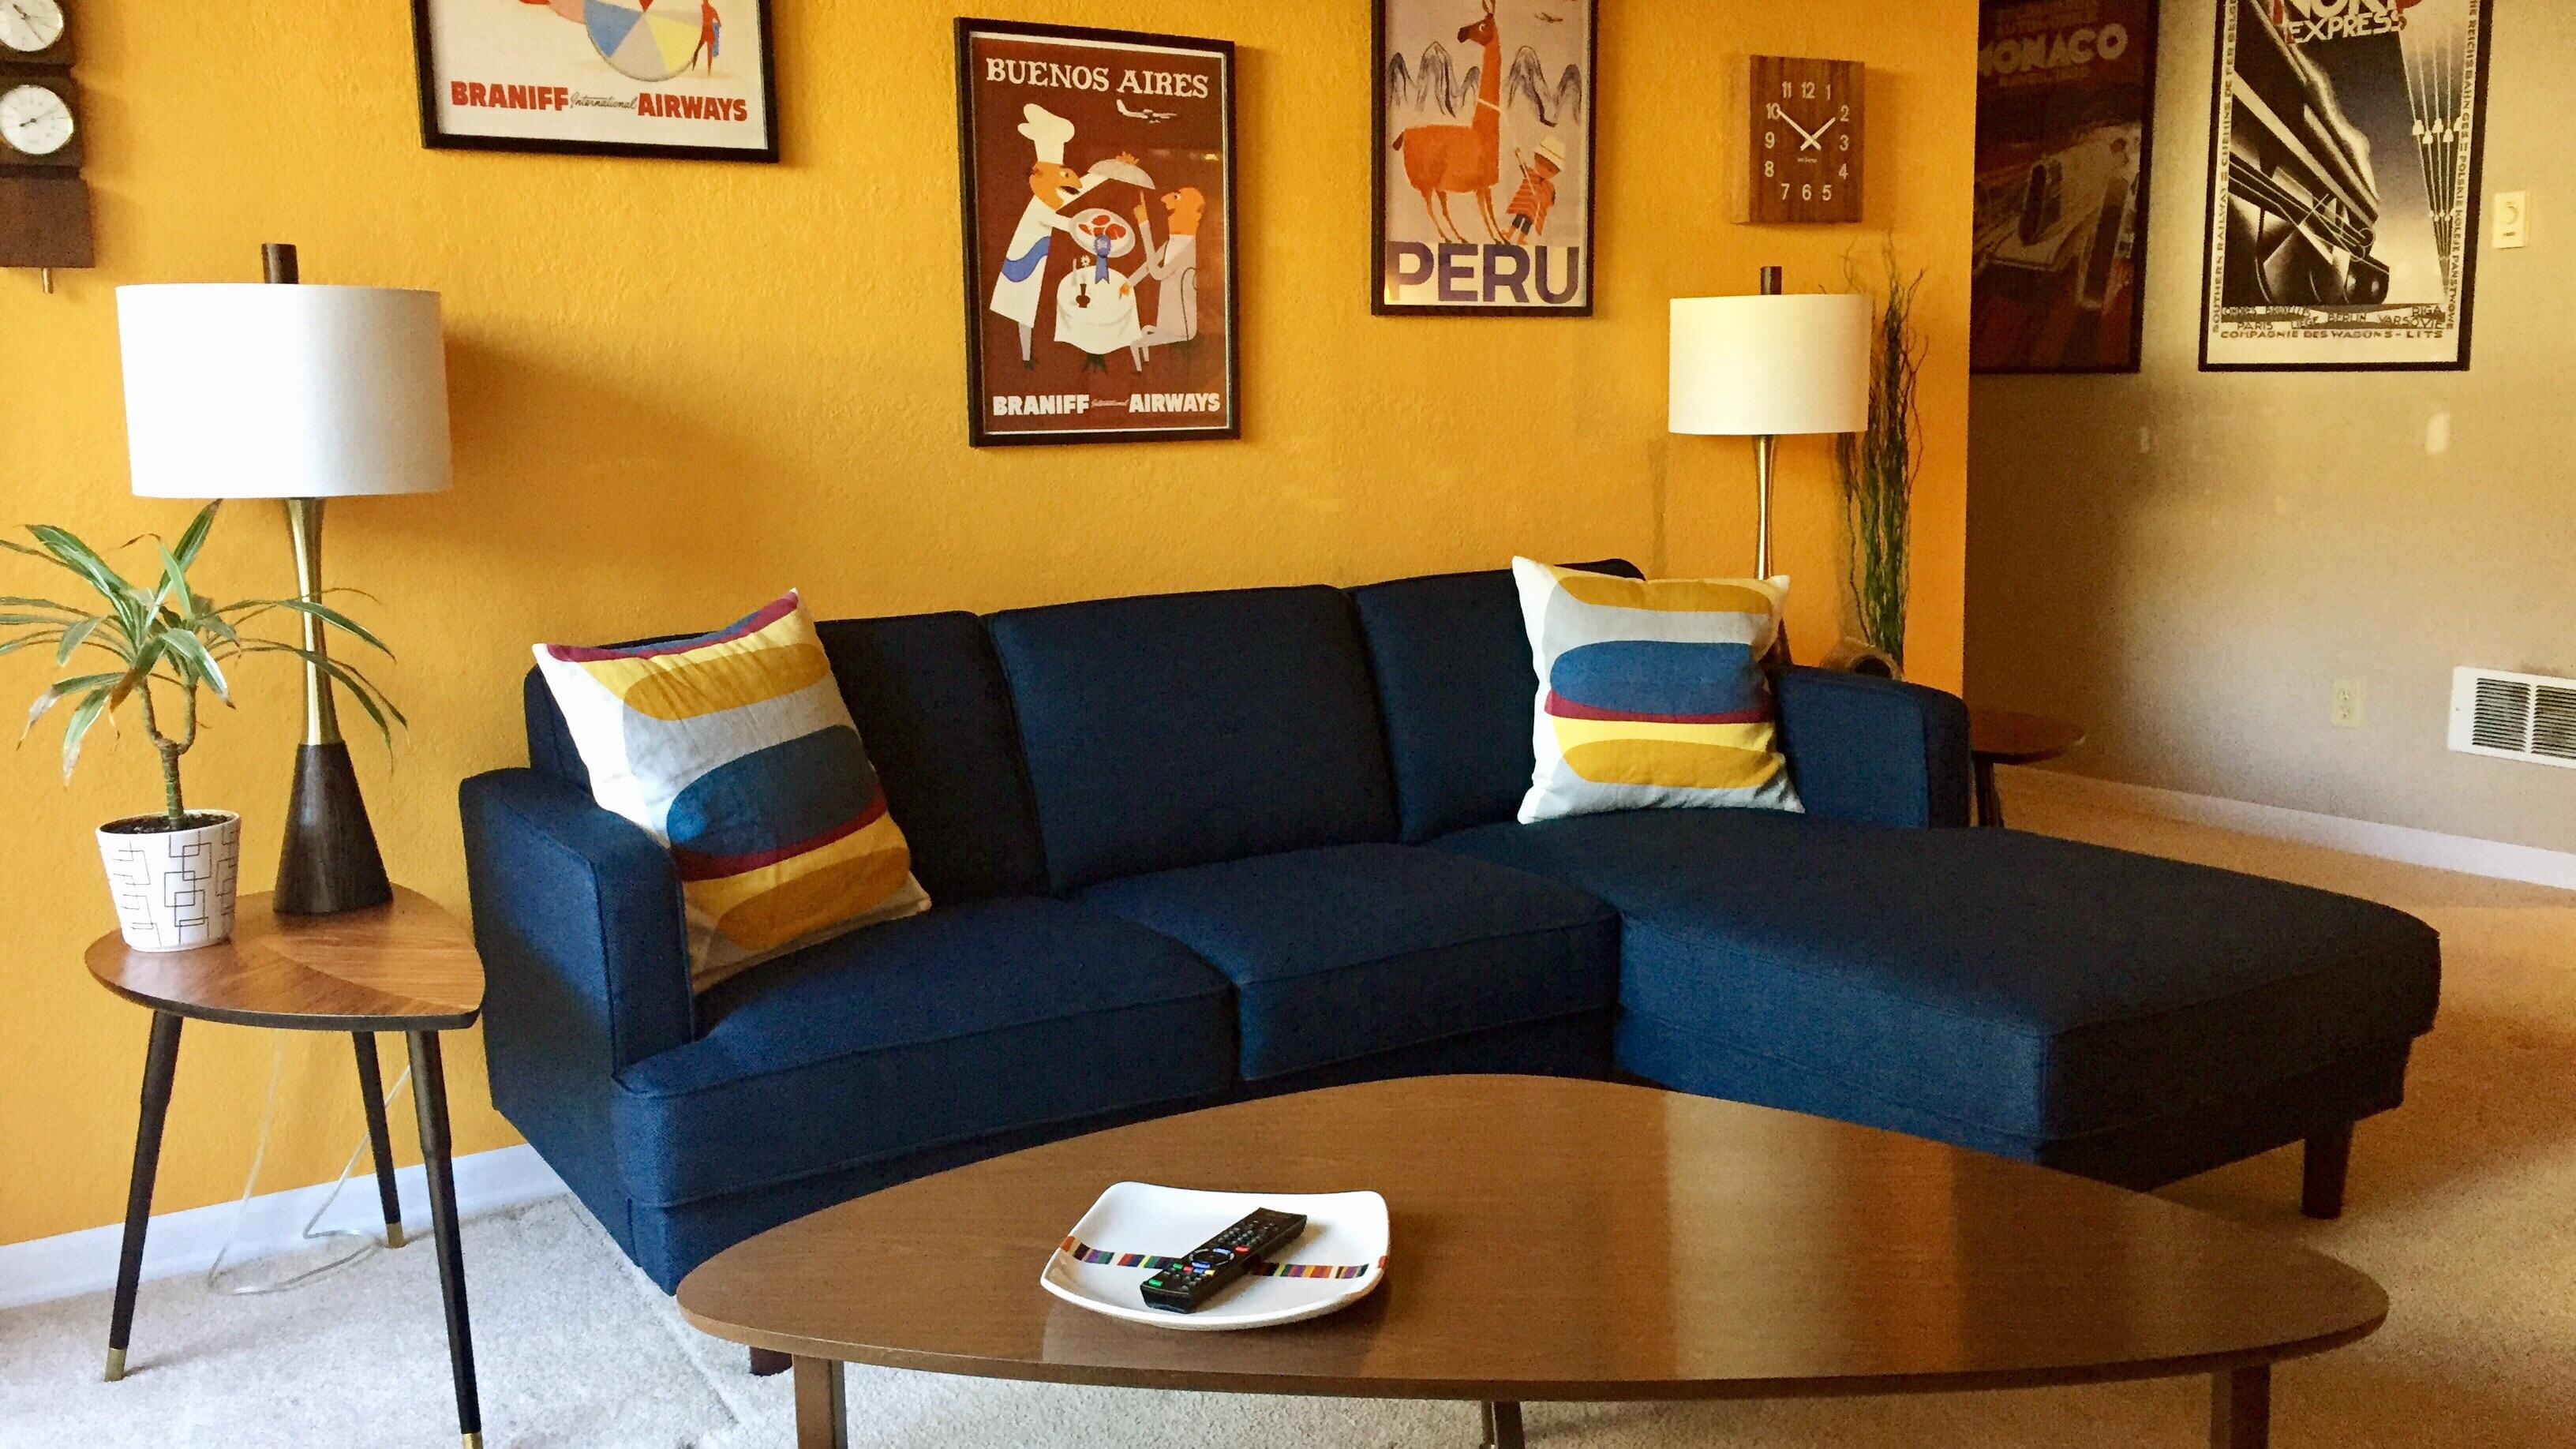 Sofa Couch Reddit Was Nervous About A Blue Sofa But Loving It Now Malelivingspace